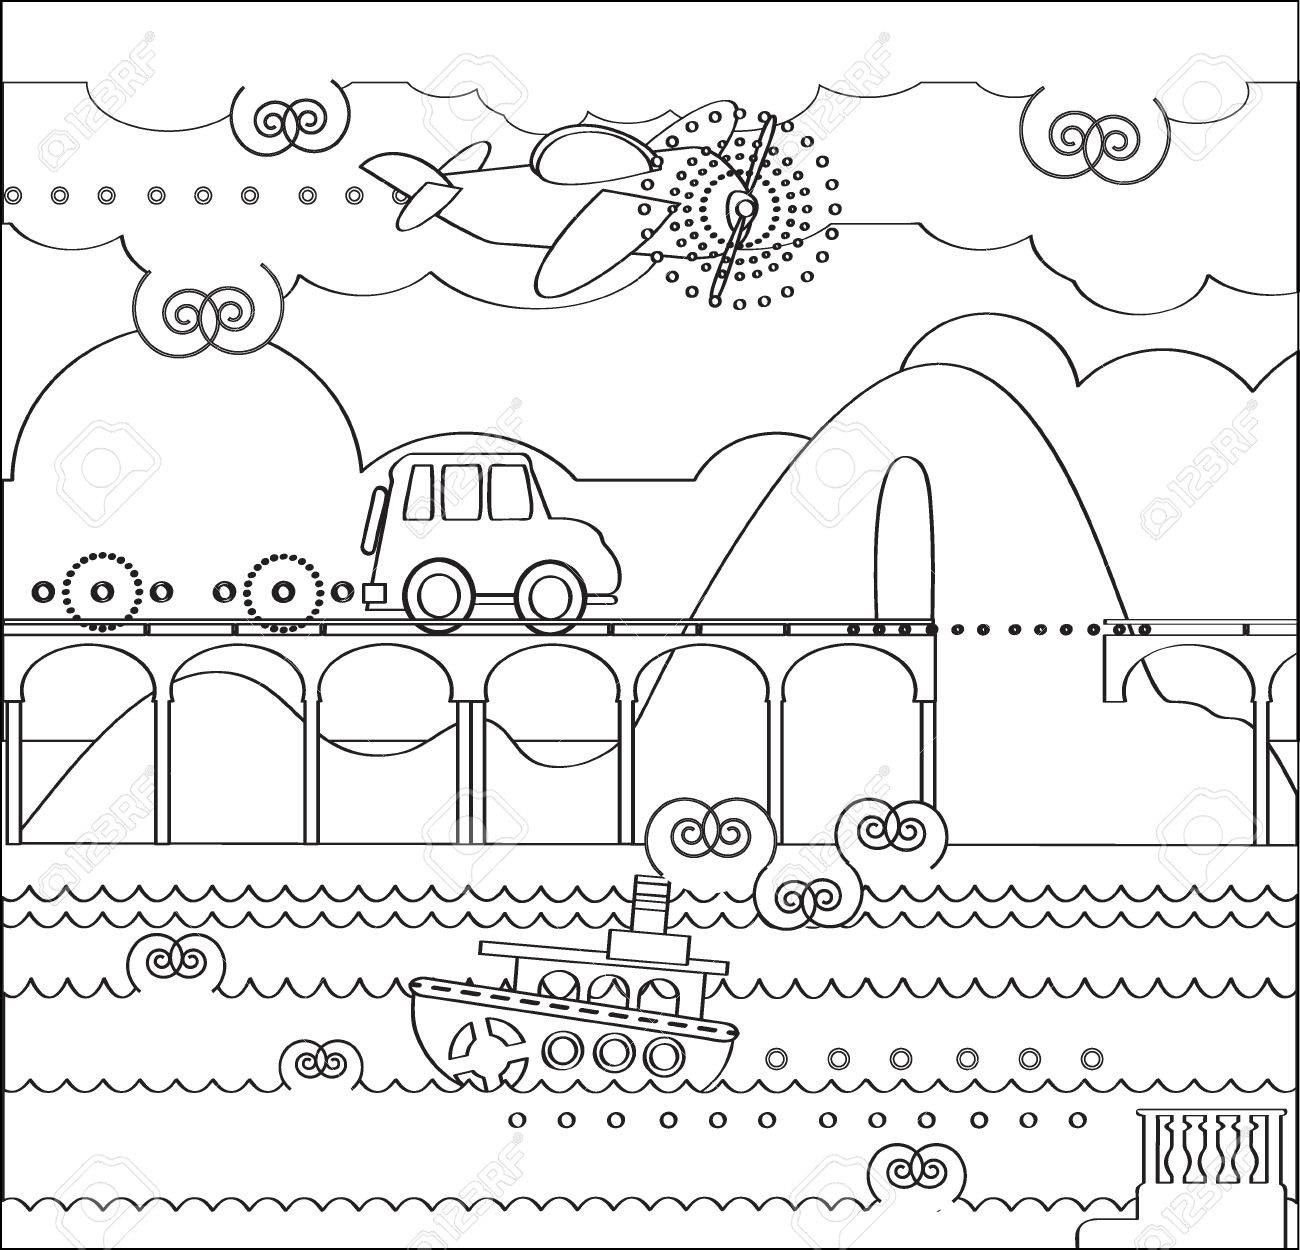 Kleurplaten Cars Planes.Coloring Page About Travel With Bridge Car Plane Boat Mountain